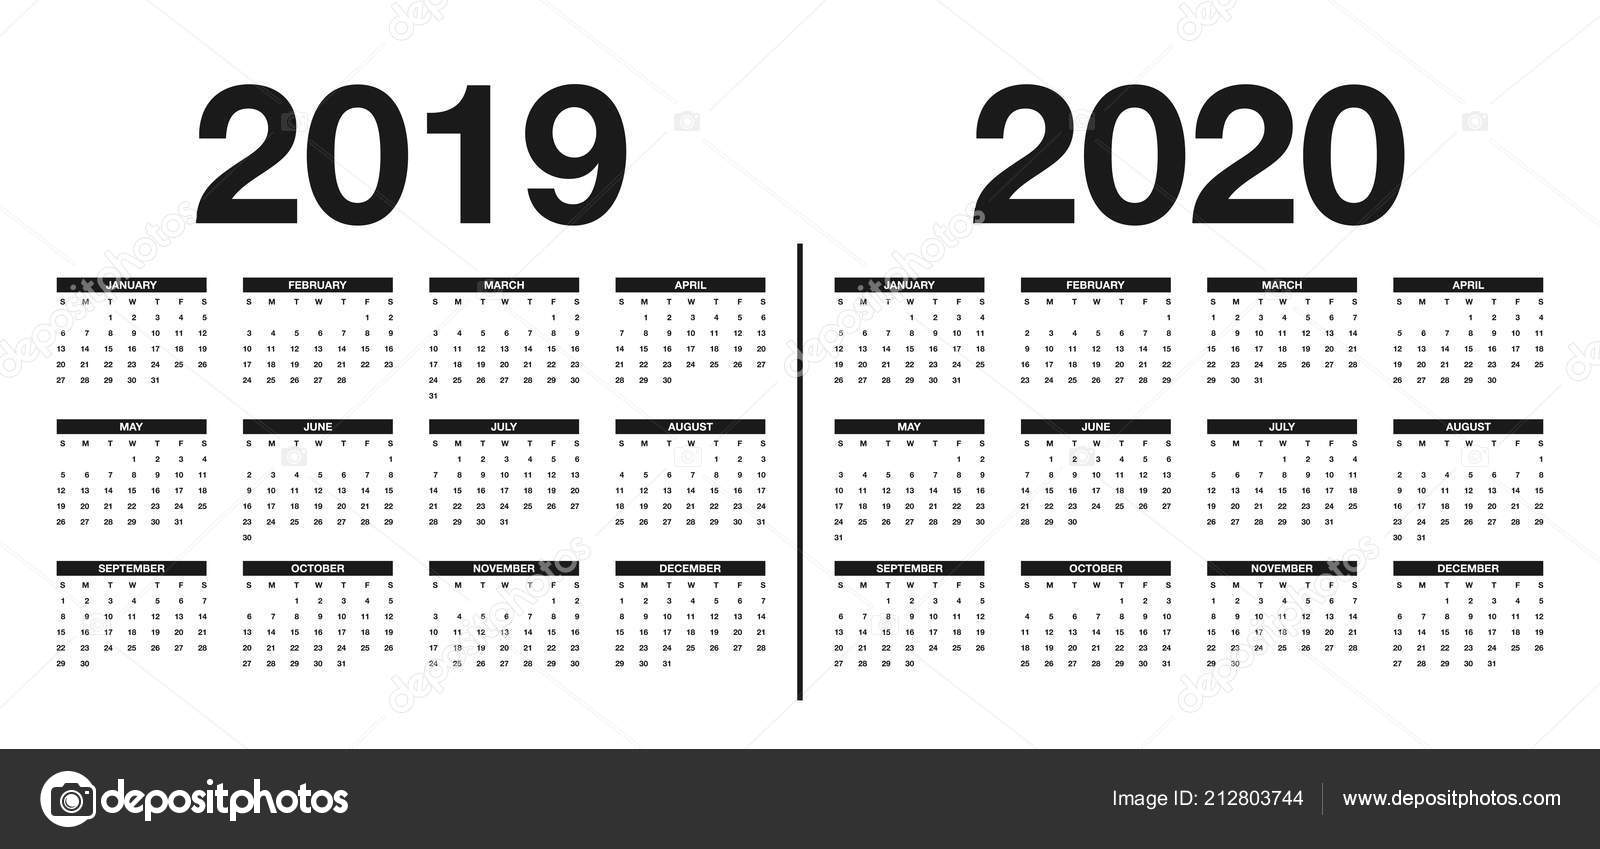 Calendario 2020 Vector Gratis.Calendar 2019 2020 Template Calendar Design Black White